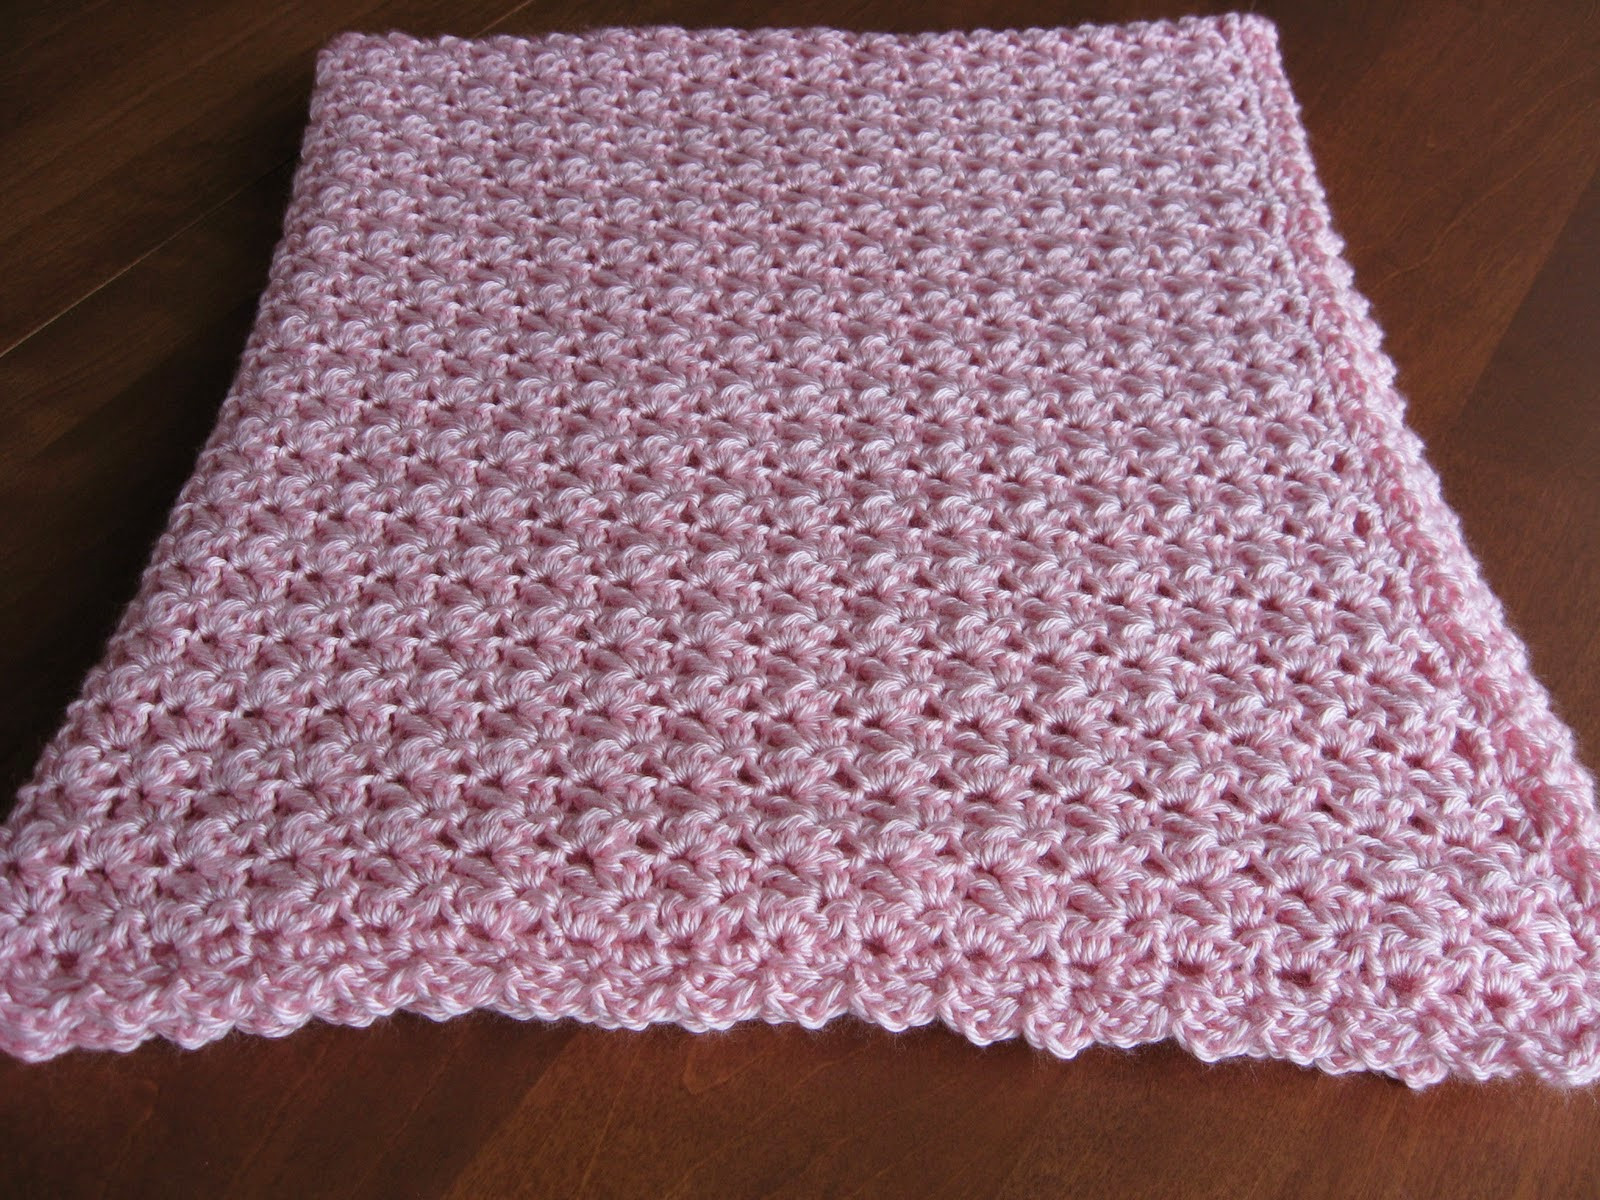 Free Easy Crochet Baby Blanket Patterns Elegant Quick and Easy Crochet Baby Afghan Pattern Dancox for Of New 48 Models Free Easy Crochet Baby Blanket Patterns